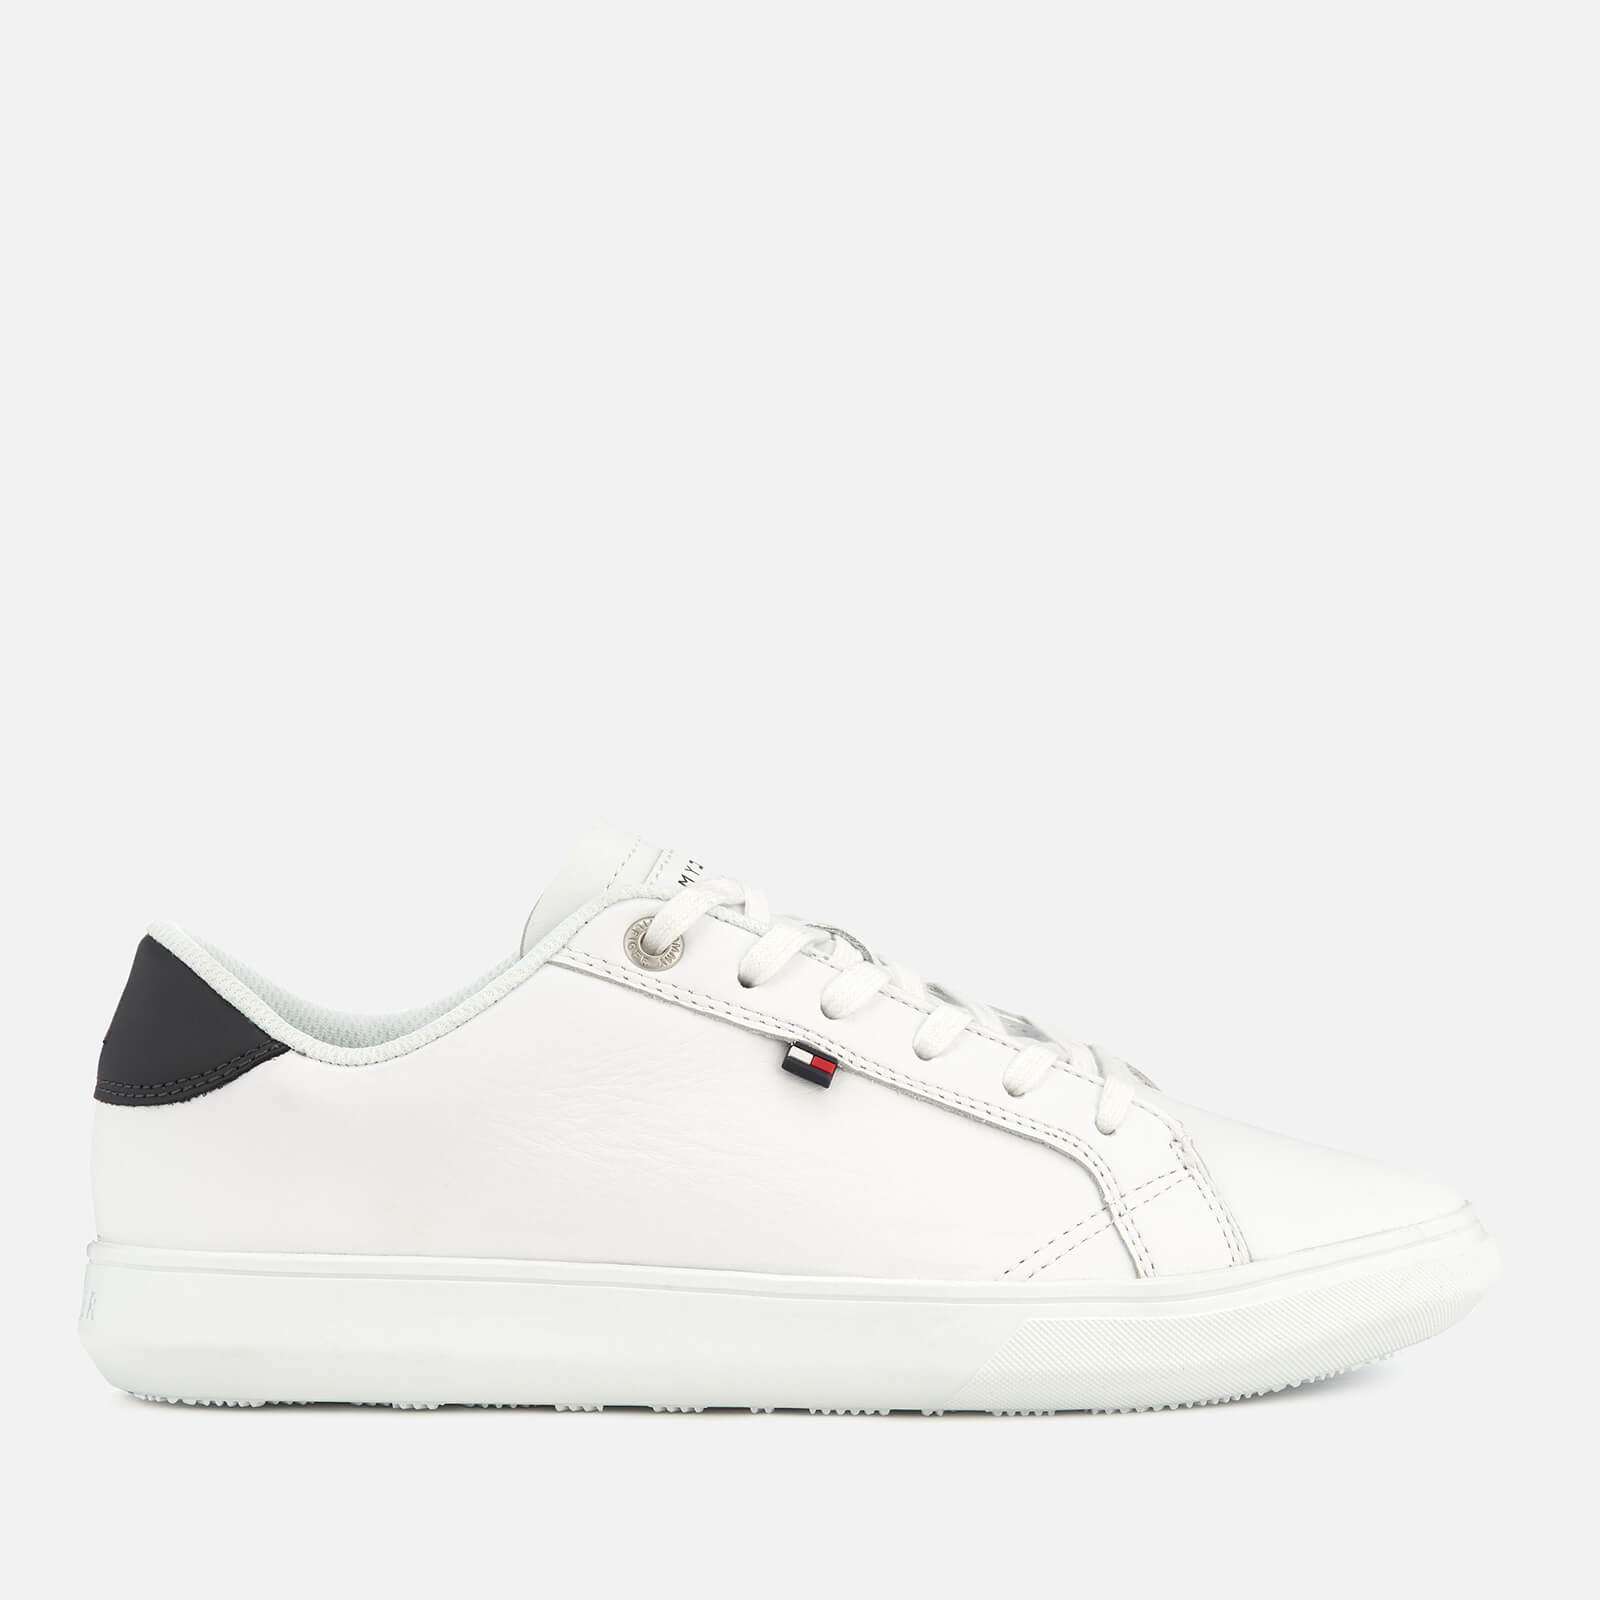 ac297b80922f Tommy Hilfiger Men s Essential Leather Cupsole Trainers - White Mens  Footwear